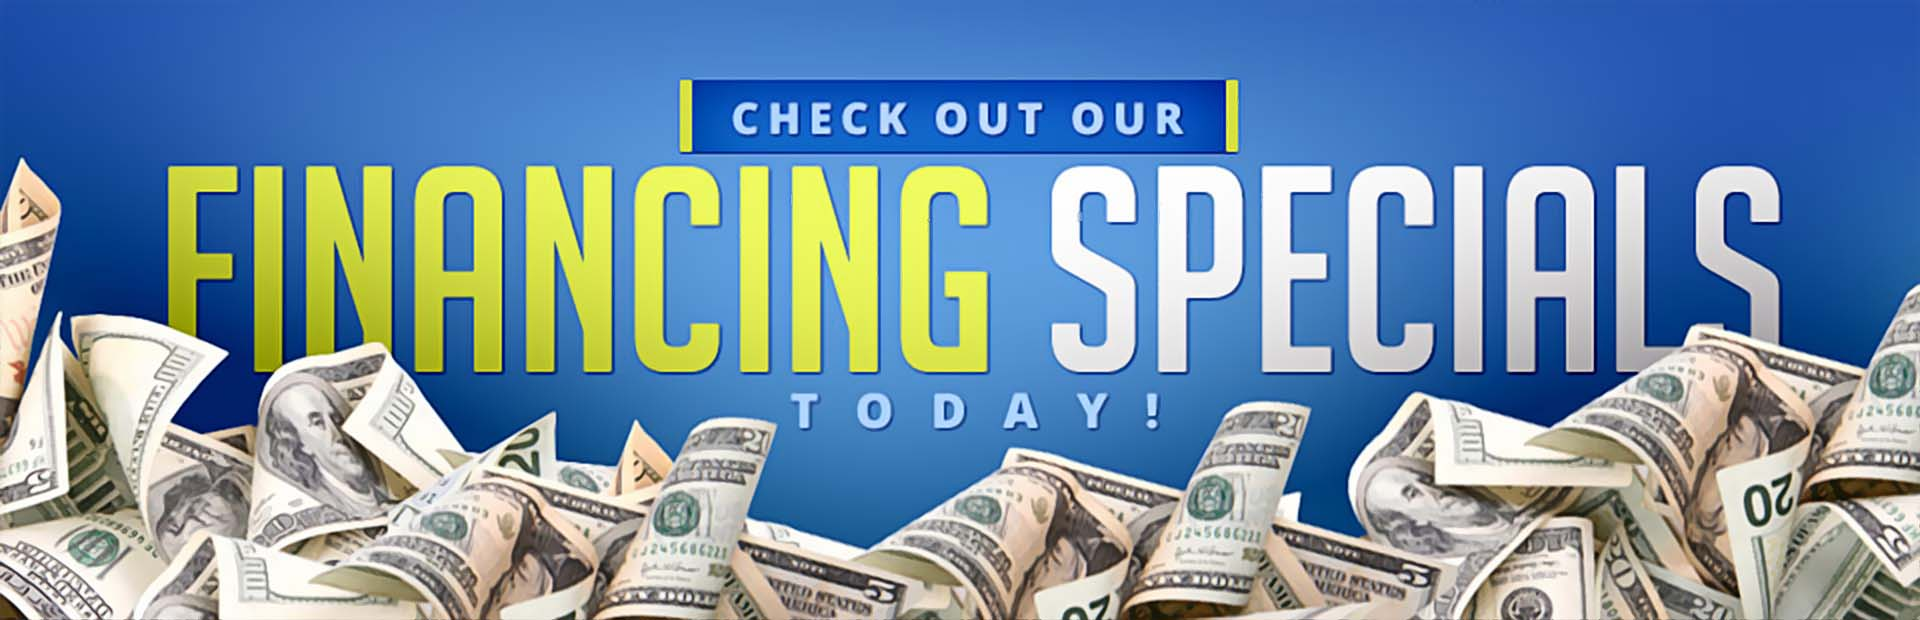 Check out our financing specials today!